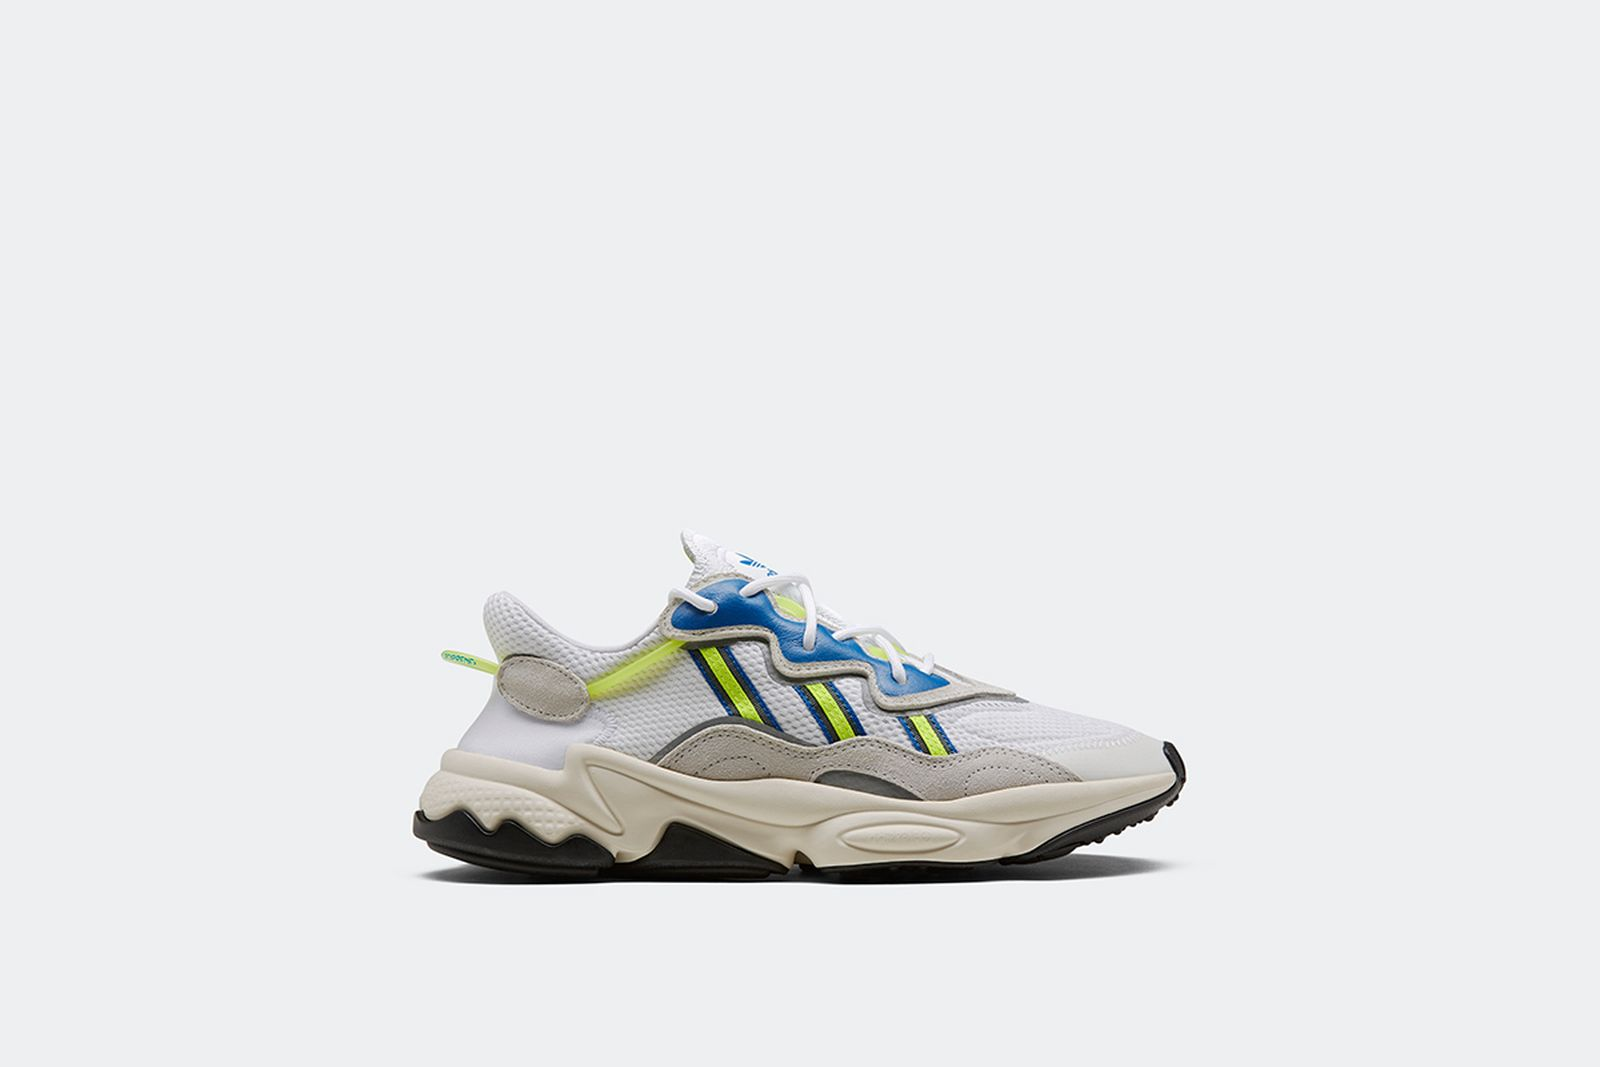 adidas ozweego release date price